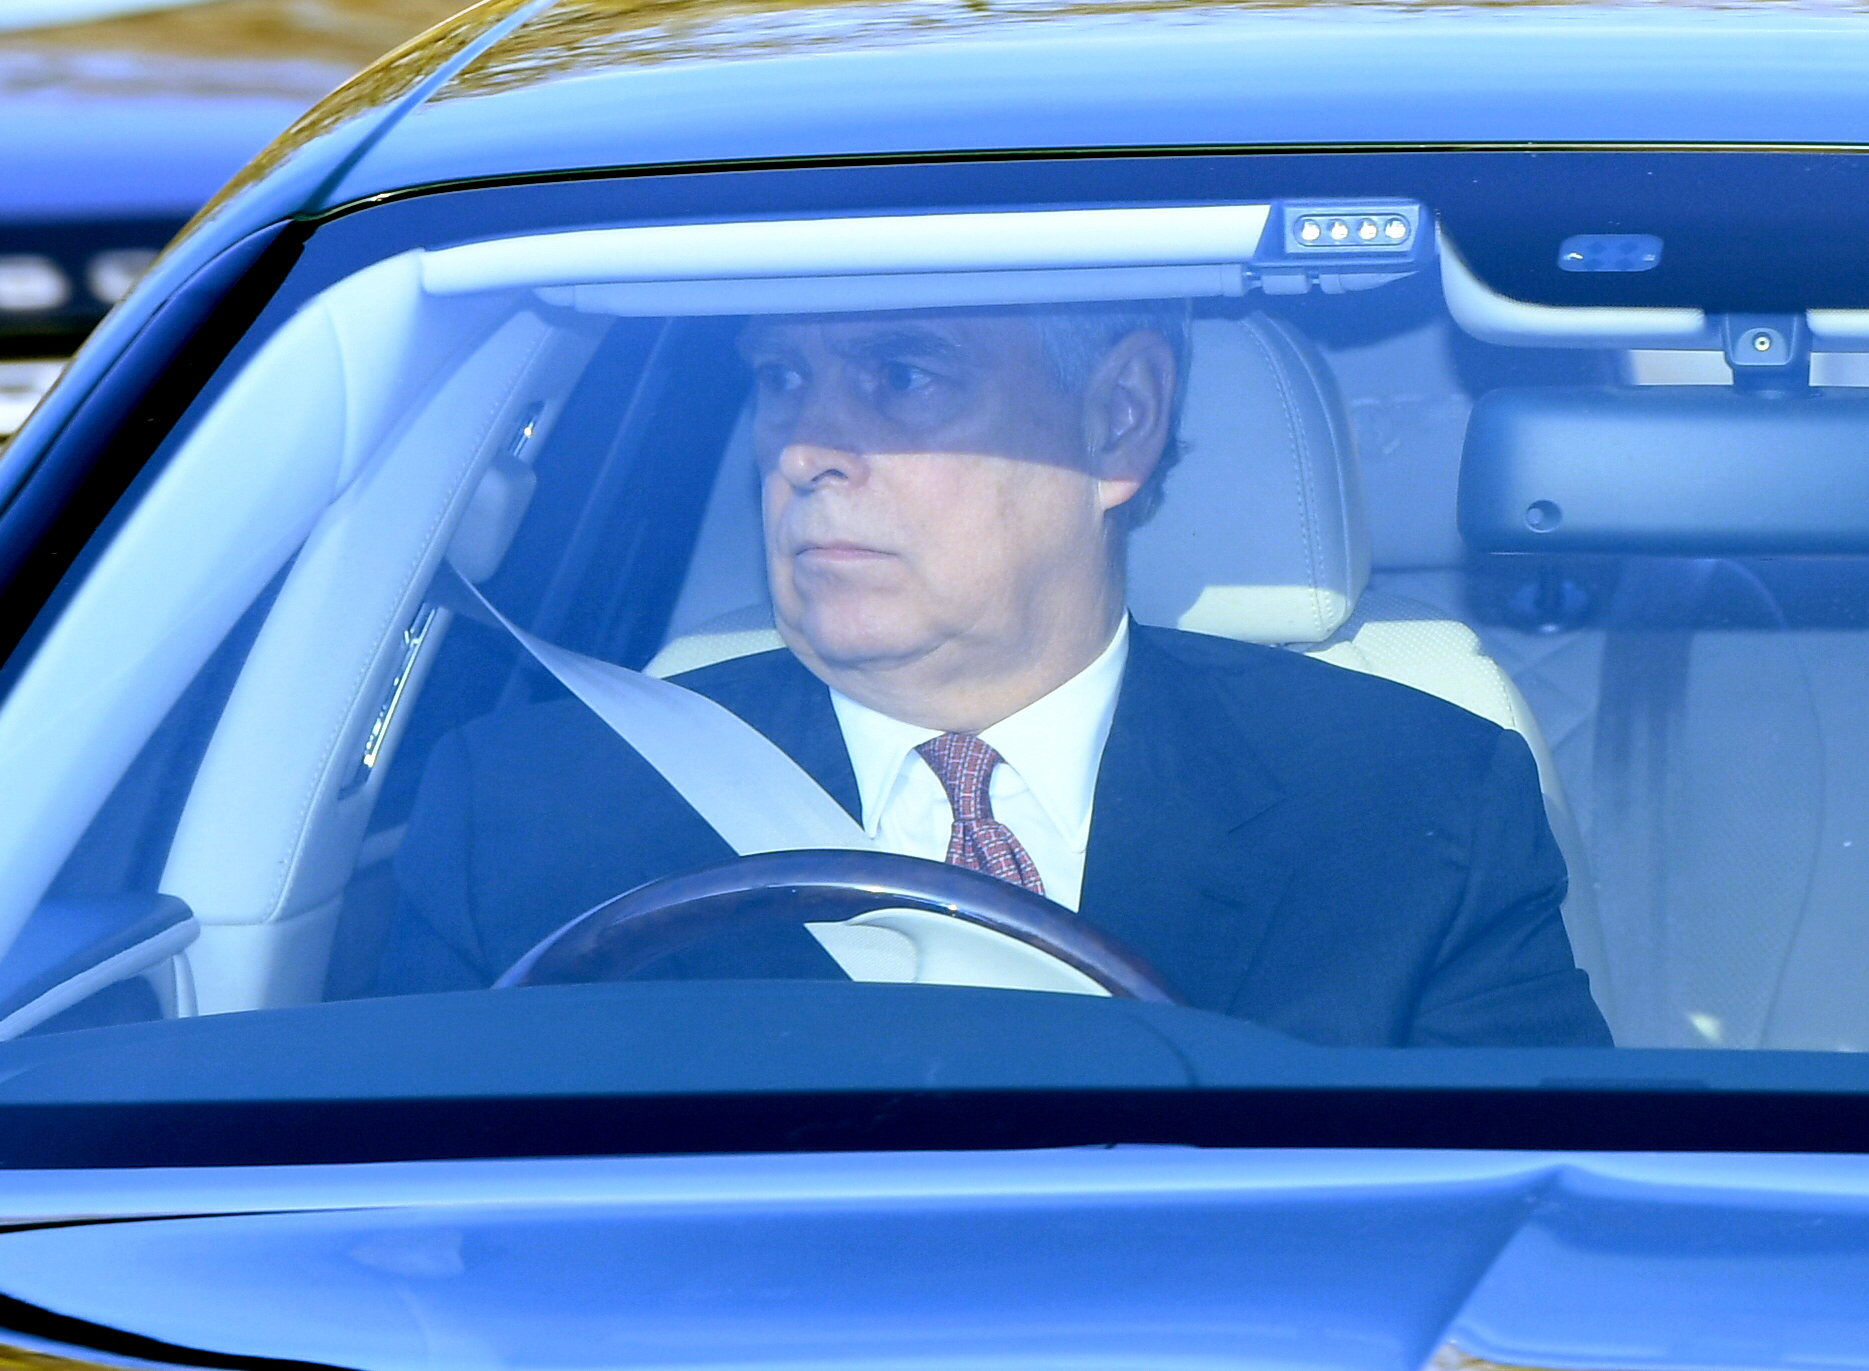 Prince Andrew arriving at the Queen's Christmas Lunch, Buckingham Palace, London.